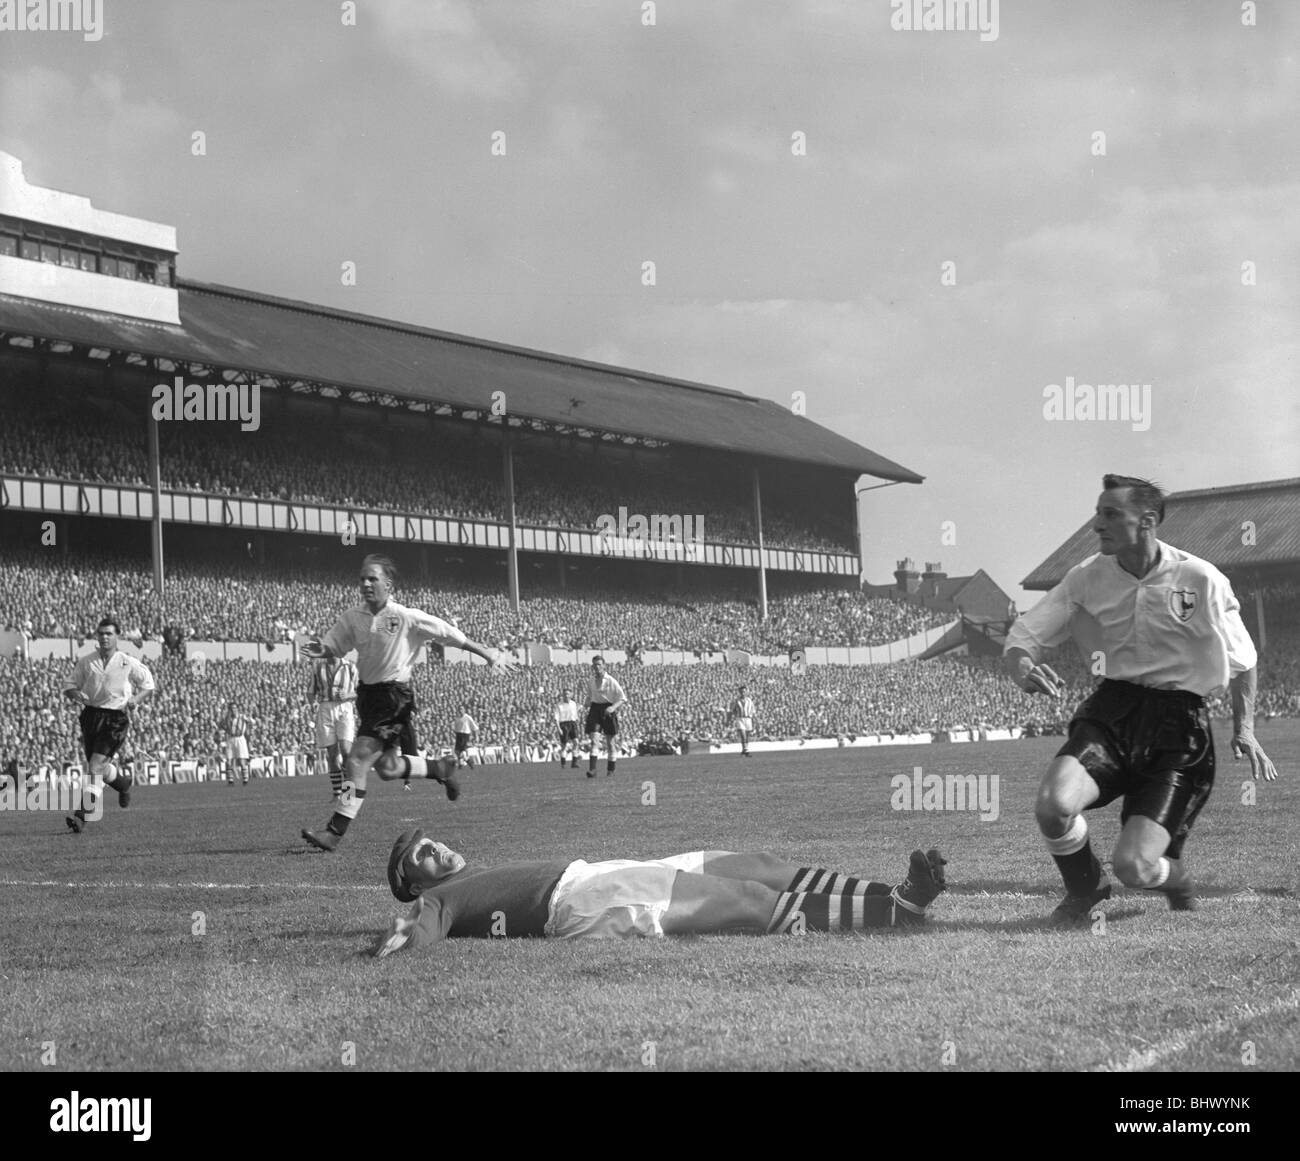 Tottenham Hotspur v West Bromwich Albion 23rd August 1952. Leslie Dicker (Spurs) gets the ball pass Norman Heath - Stock Image